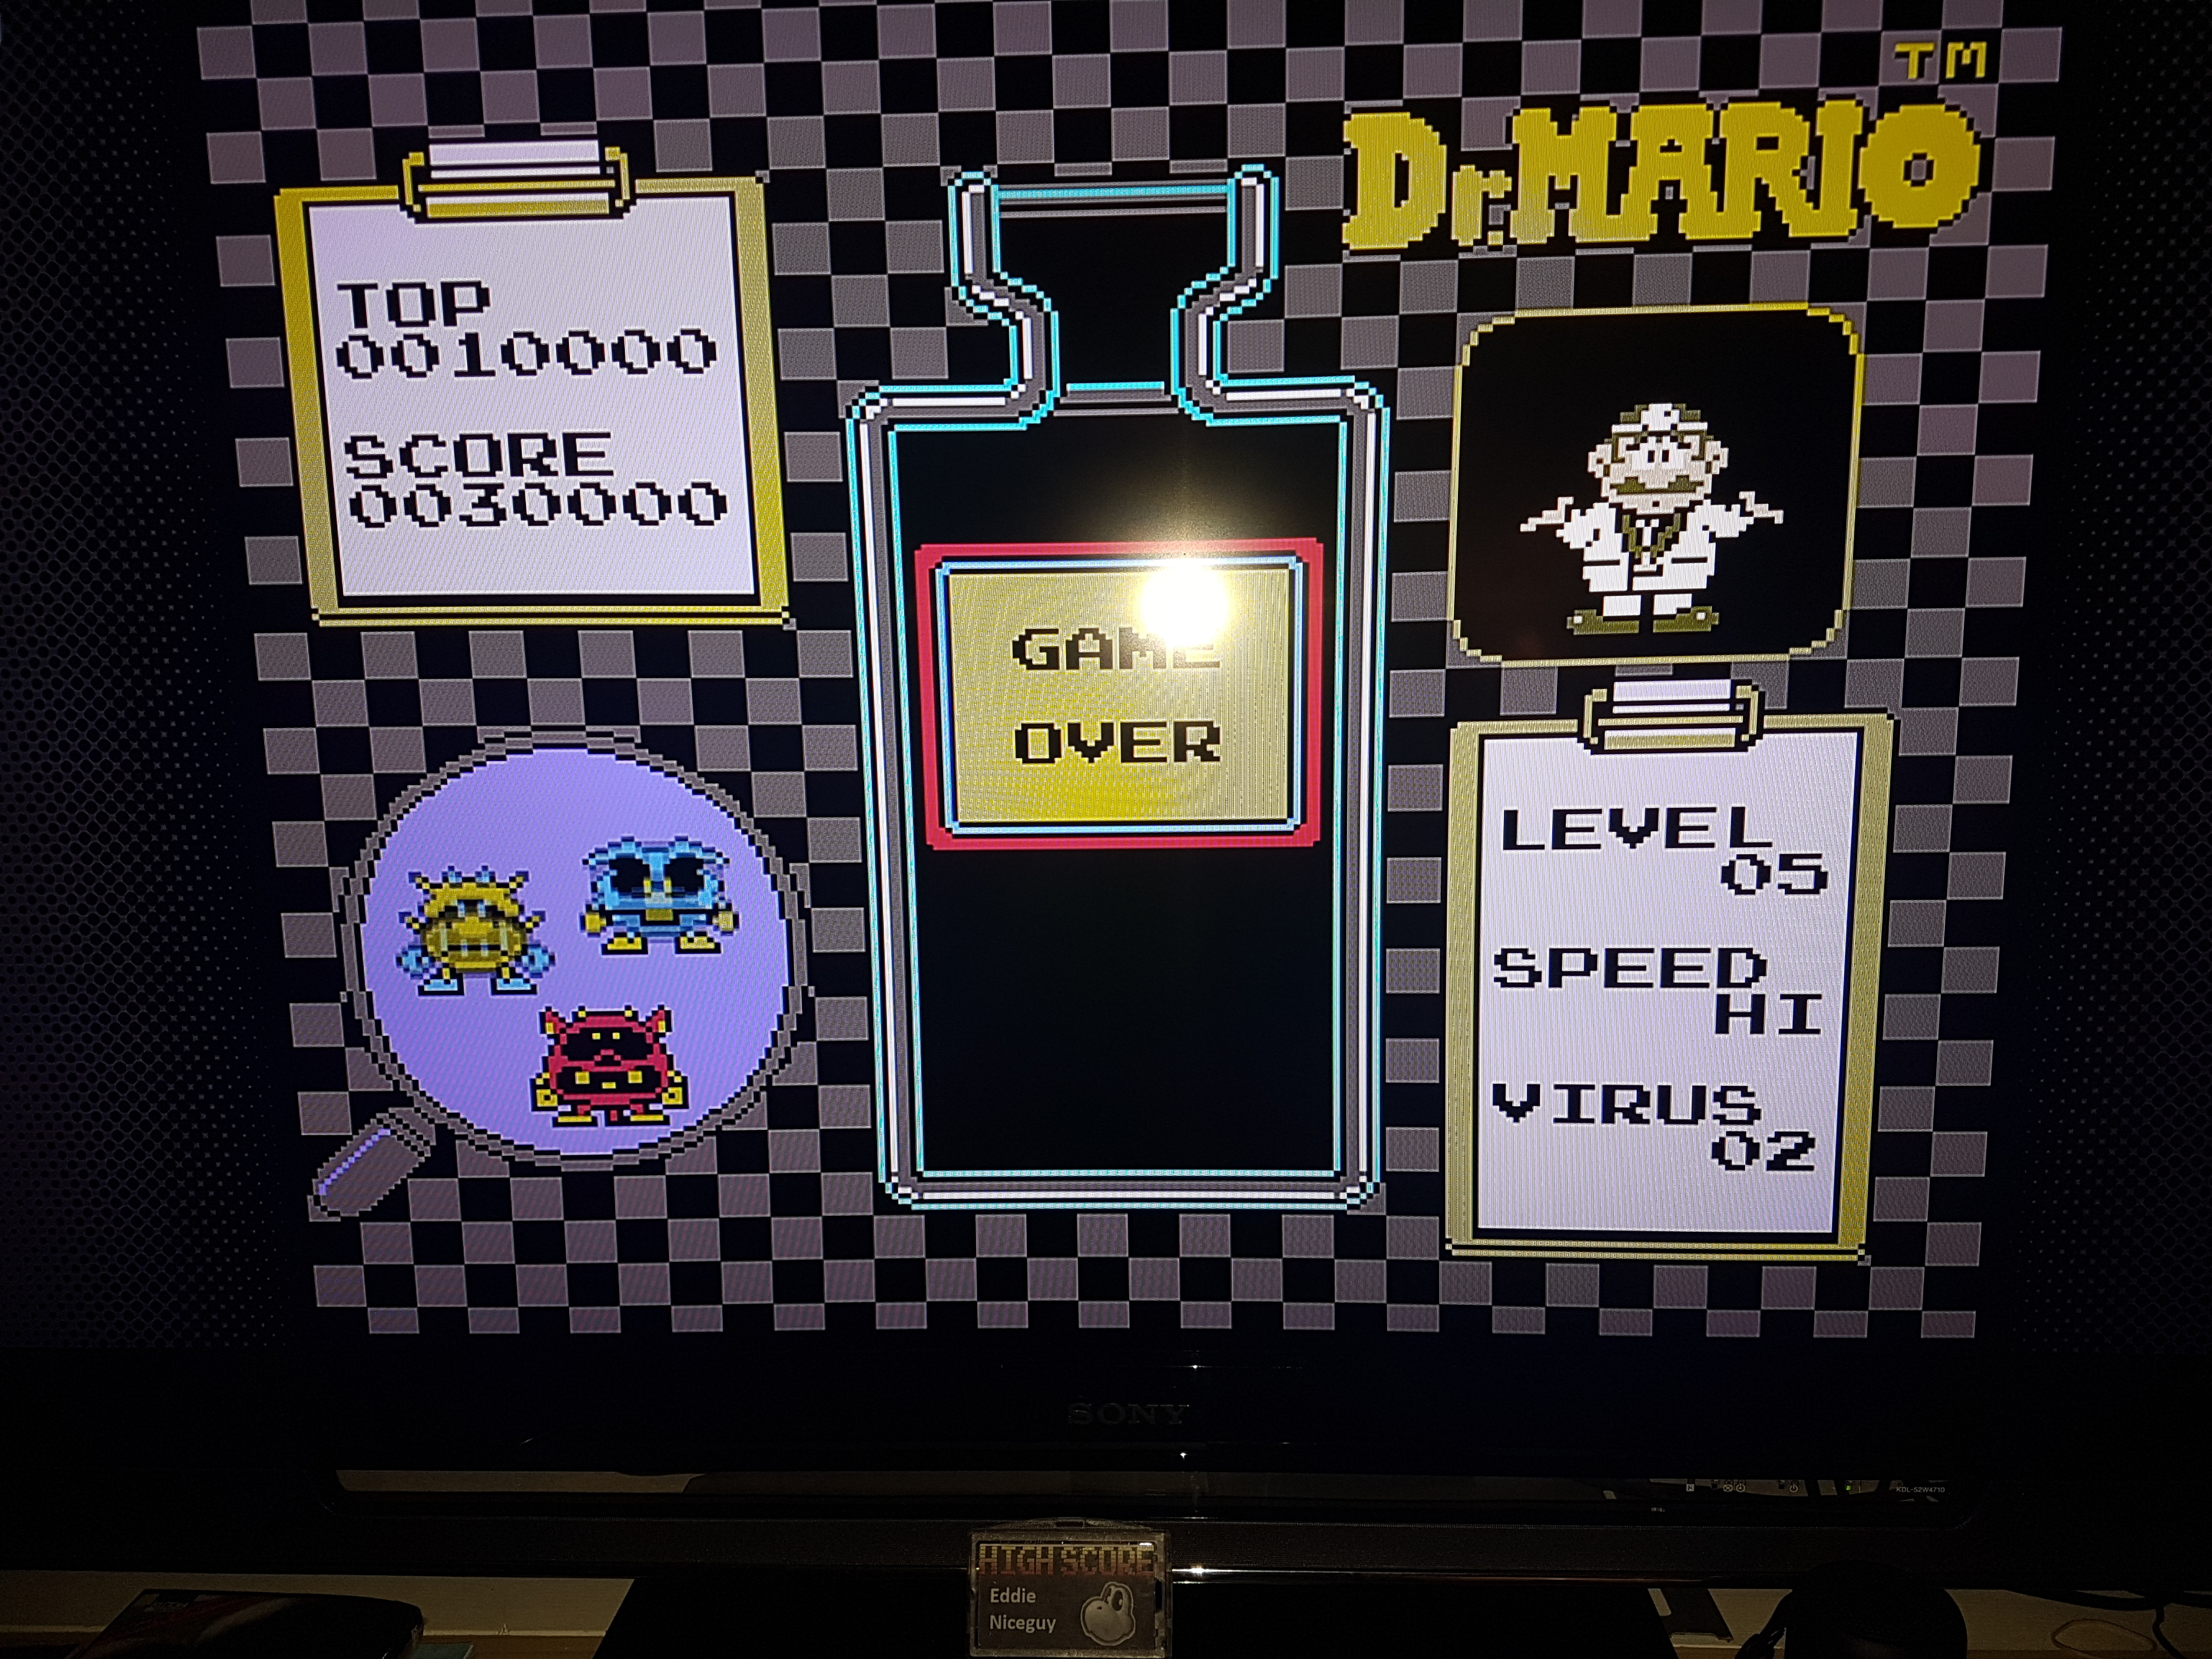 Dr. Mario [High] 30,000 points